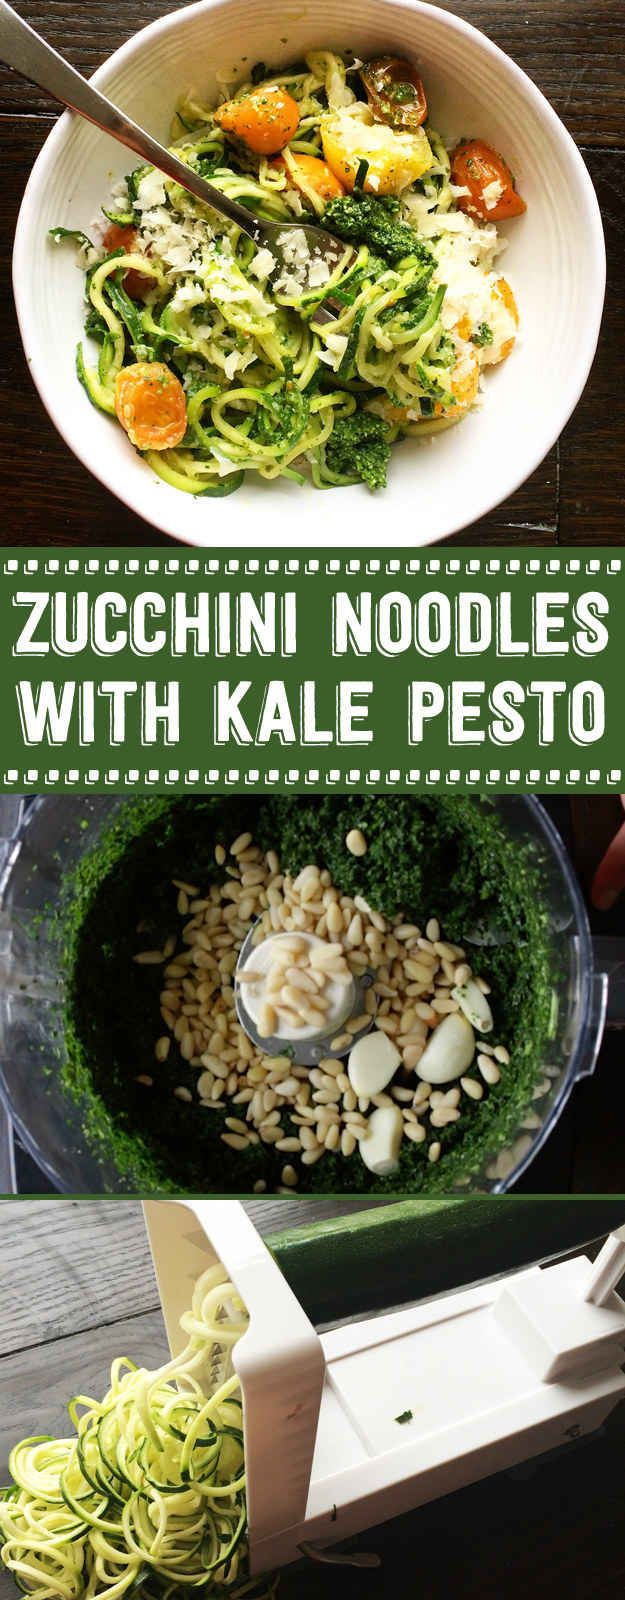 My new fave for meatless Mondays. Super easy zucchini noodles with kale pesto. Loads of flavor and healthy!